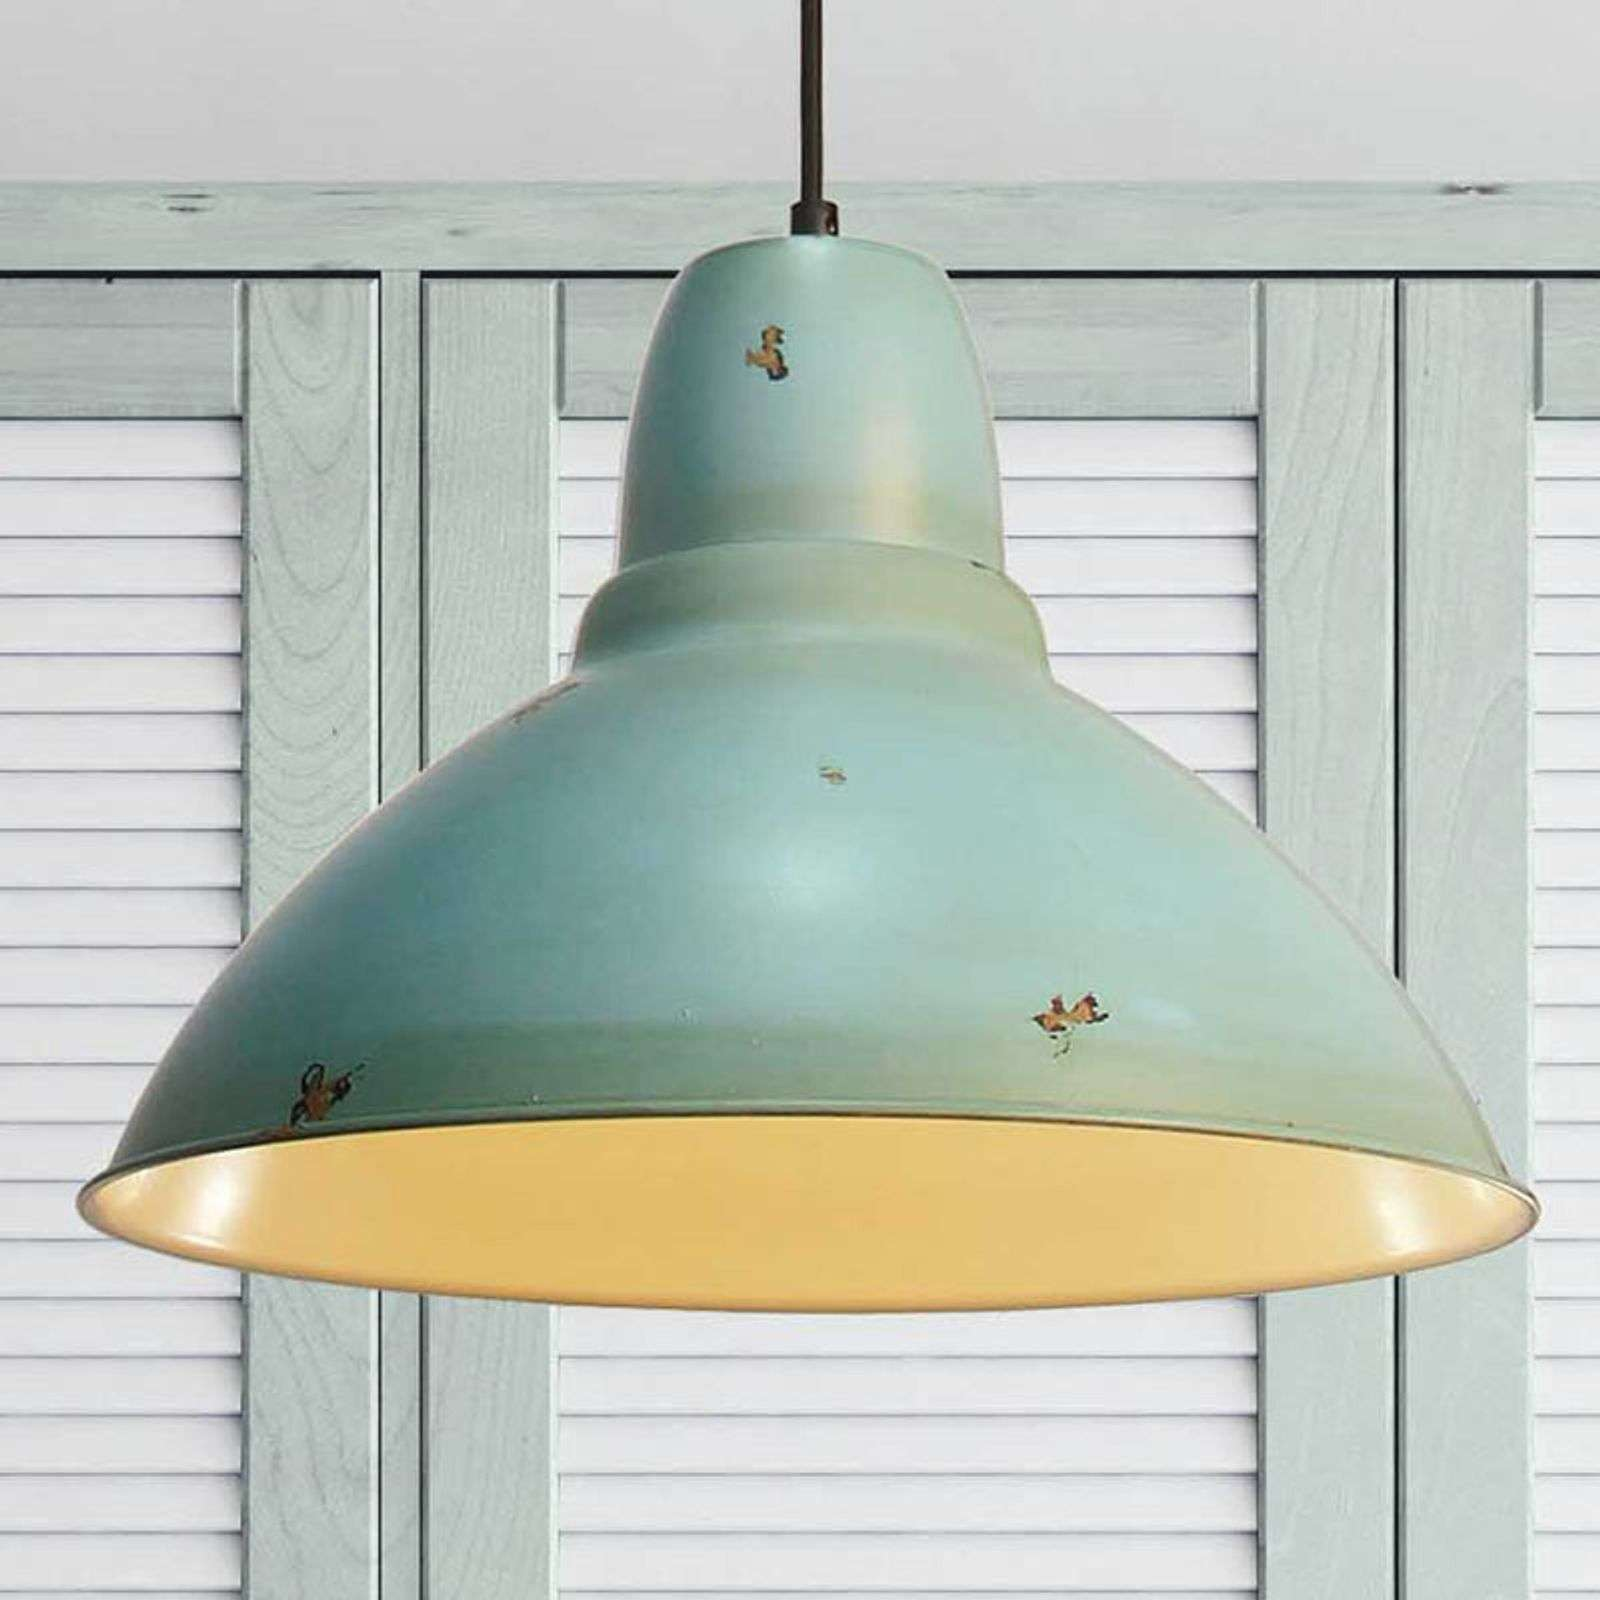 In vintage design - hanglamp Levi in turkoois